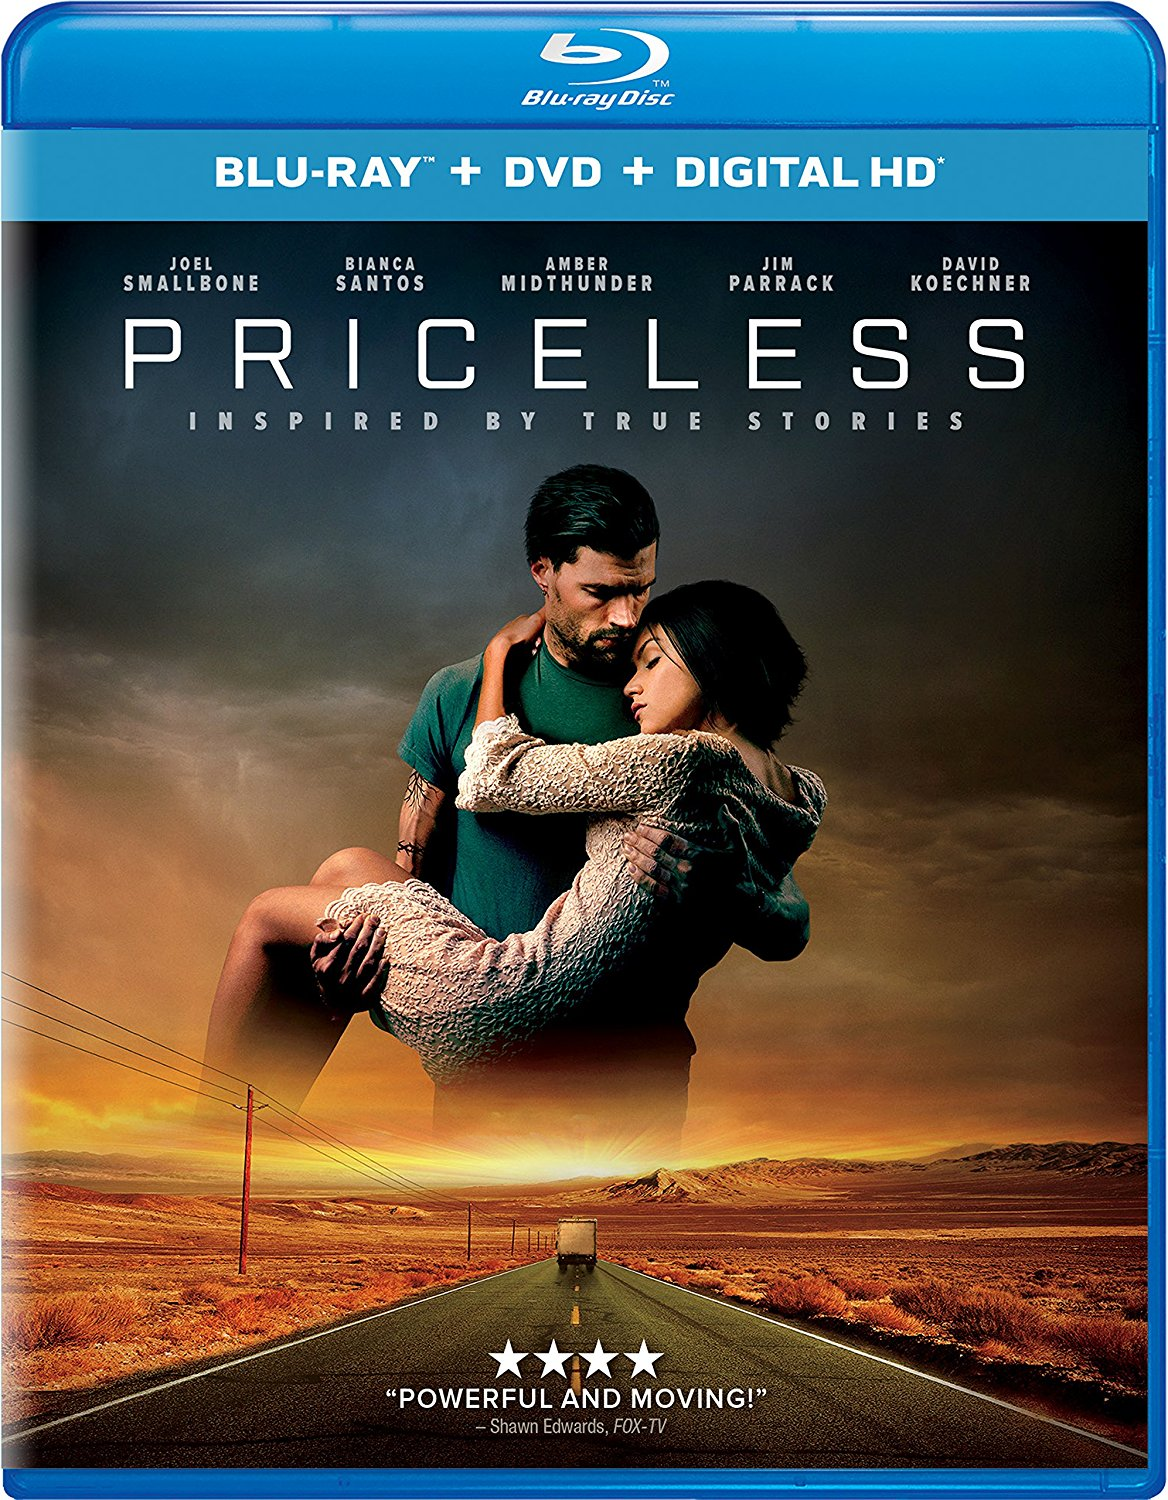 Priceless Blu-ray Review